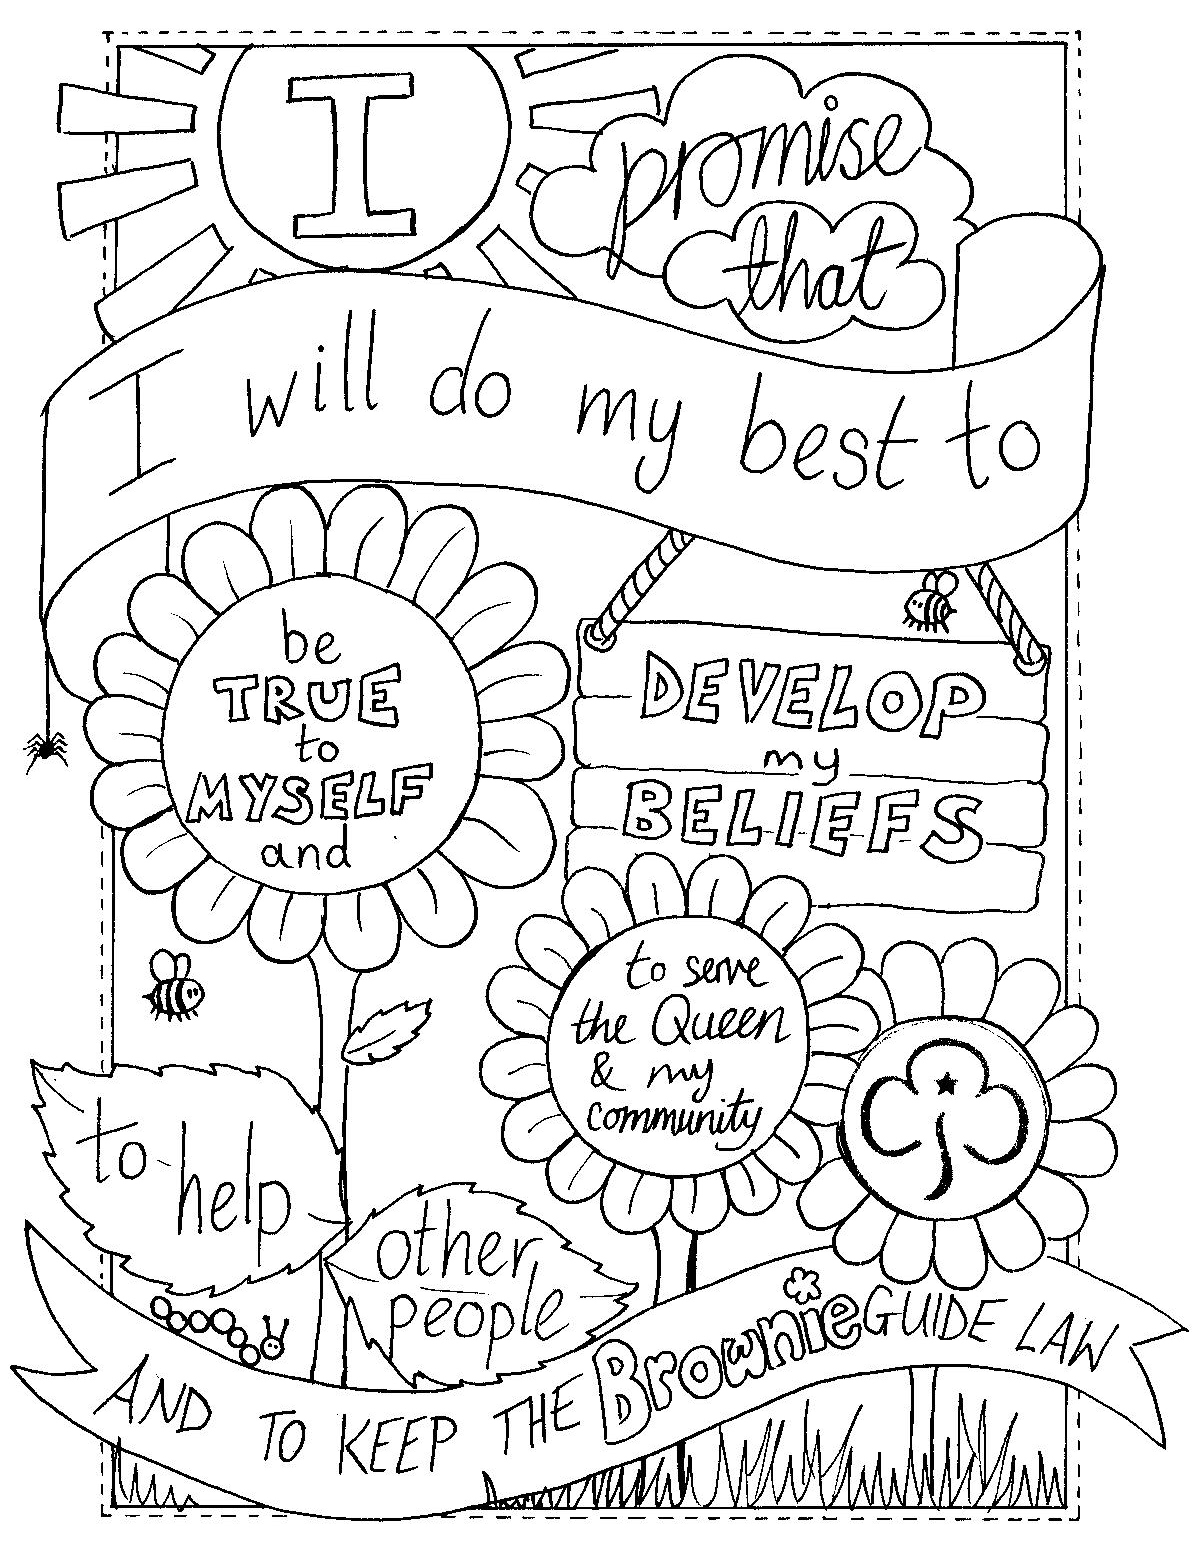 1198x1542 Girl Scout Law Coloring Pages Newyork Rp Com